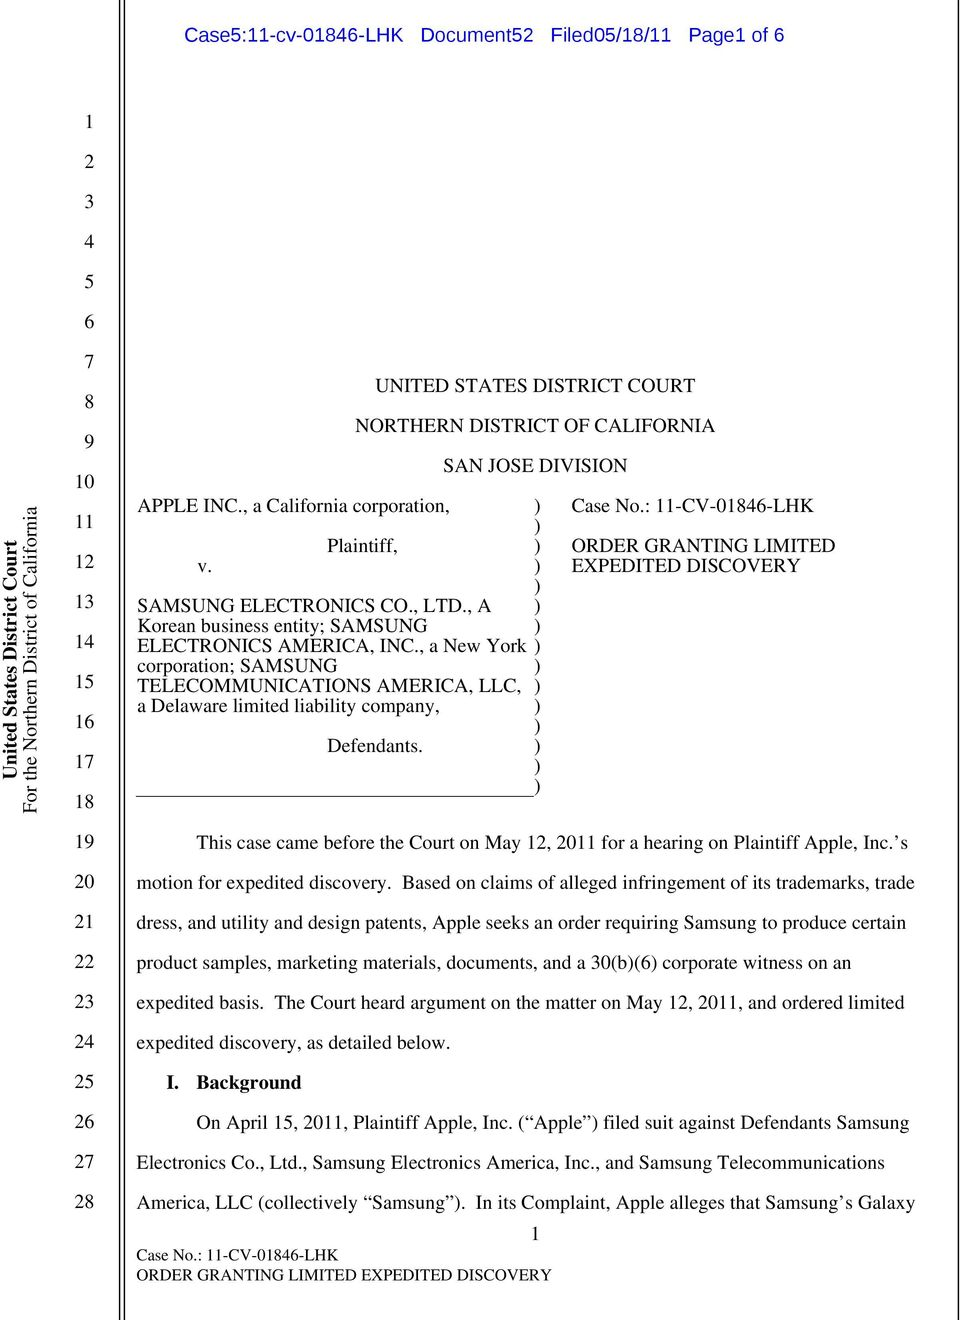 SAN JOSE DIVISION Case No.: -CV-0-LHK Case No.: -CV-0-LHK ORDER GRANTING LIMITED EXPEDITED DISCOVERY This case came before the Court on May, 0 for a hearing on Plaintiff Apple, Inc.